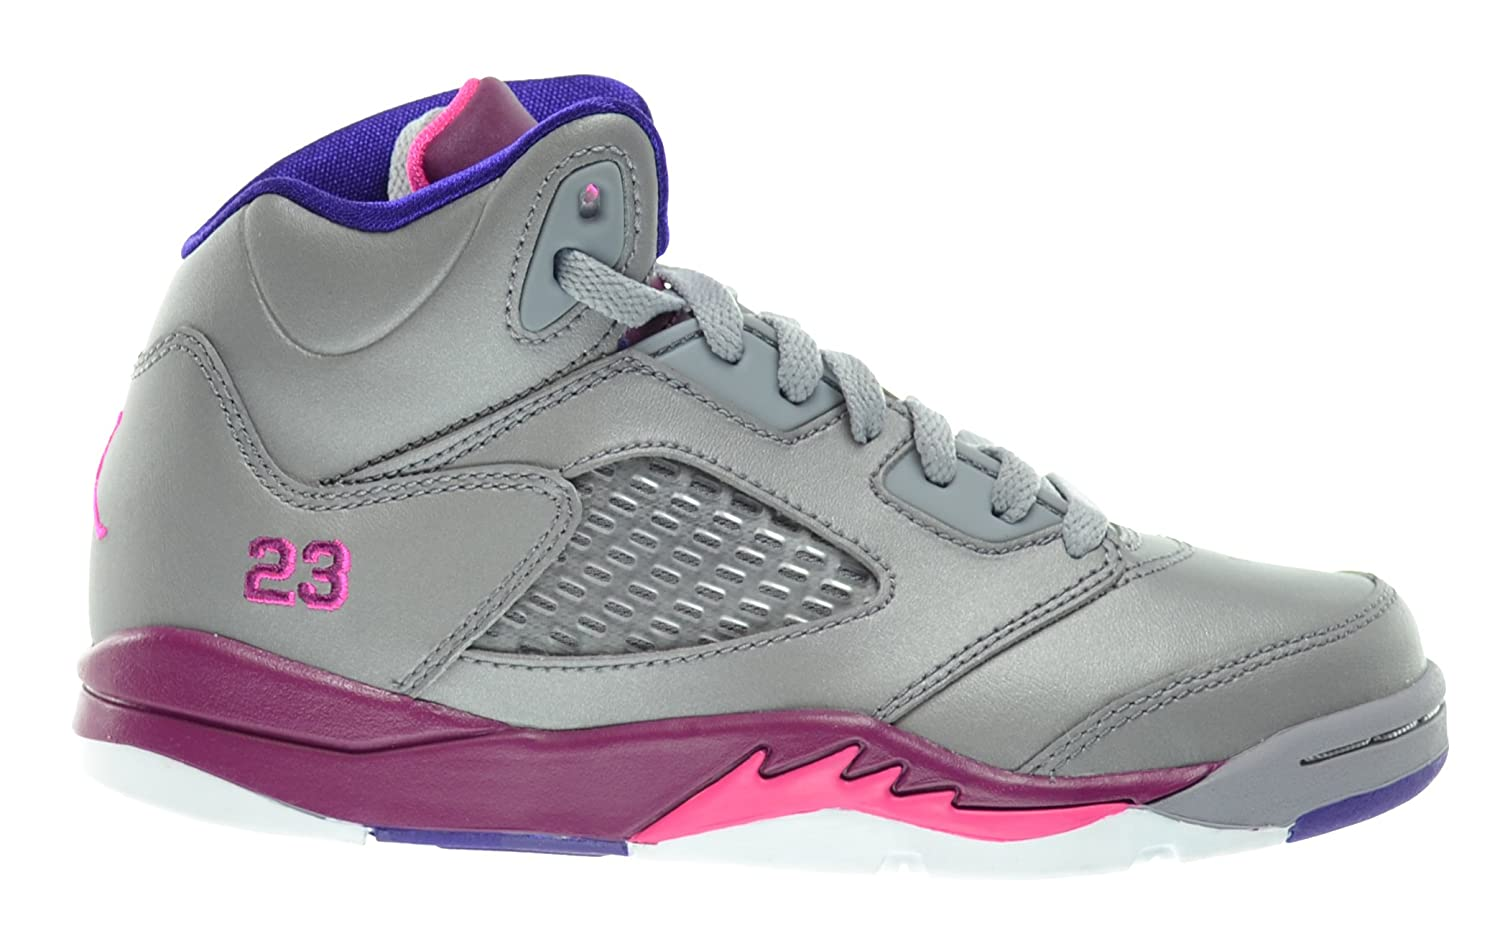 new product ce457 44d26 Girls Jordan 5 Retro (PS) Little Kids Basketball Shoes ...